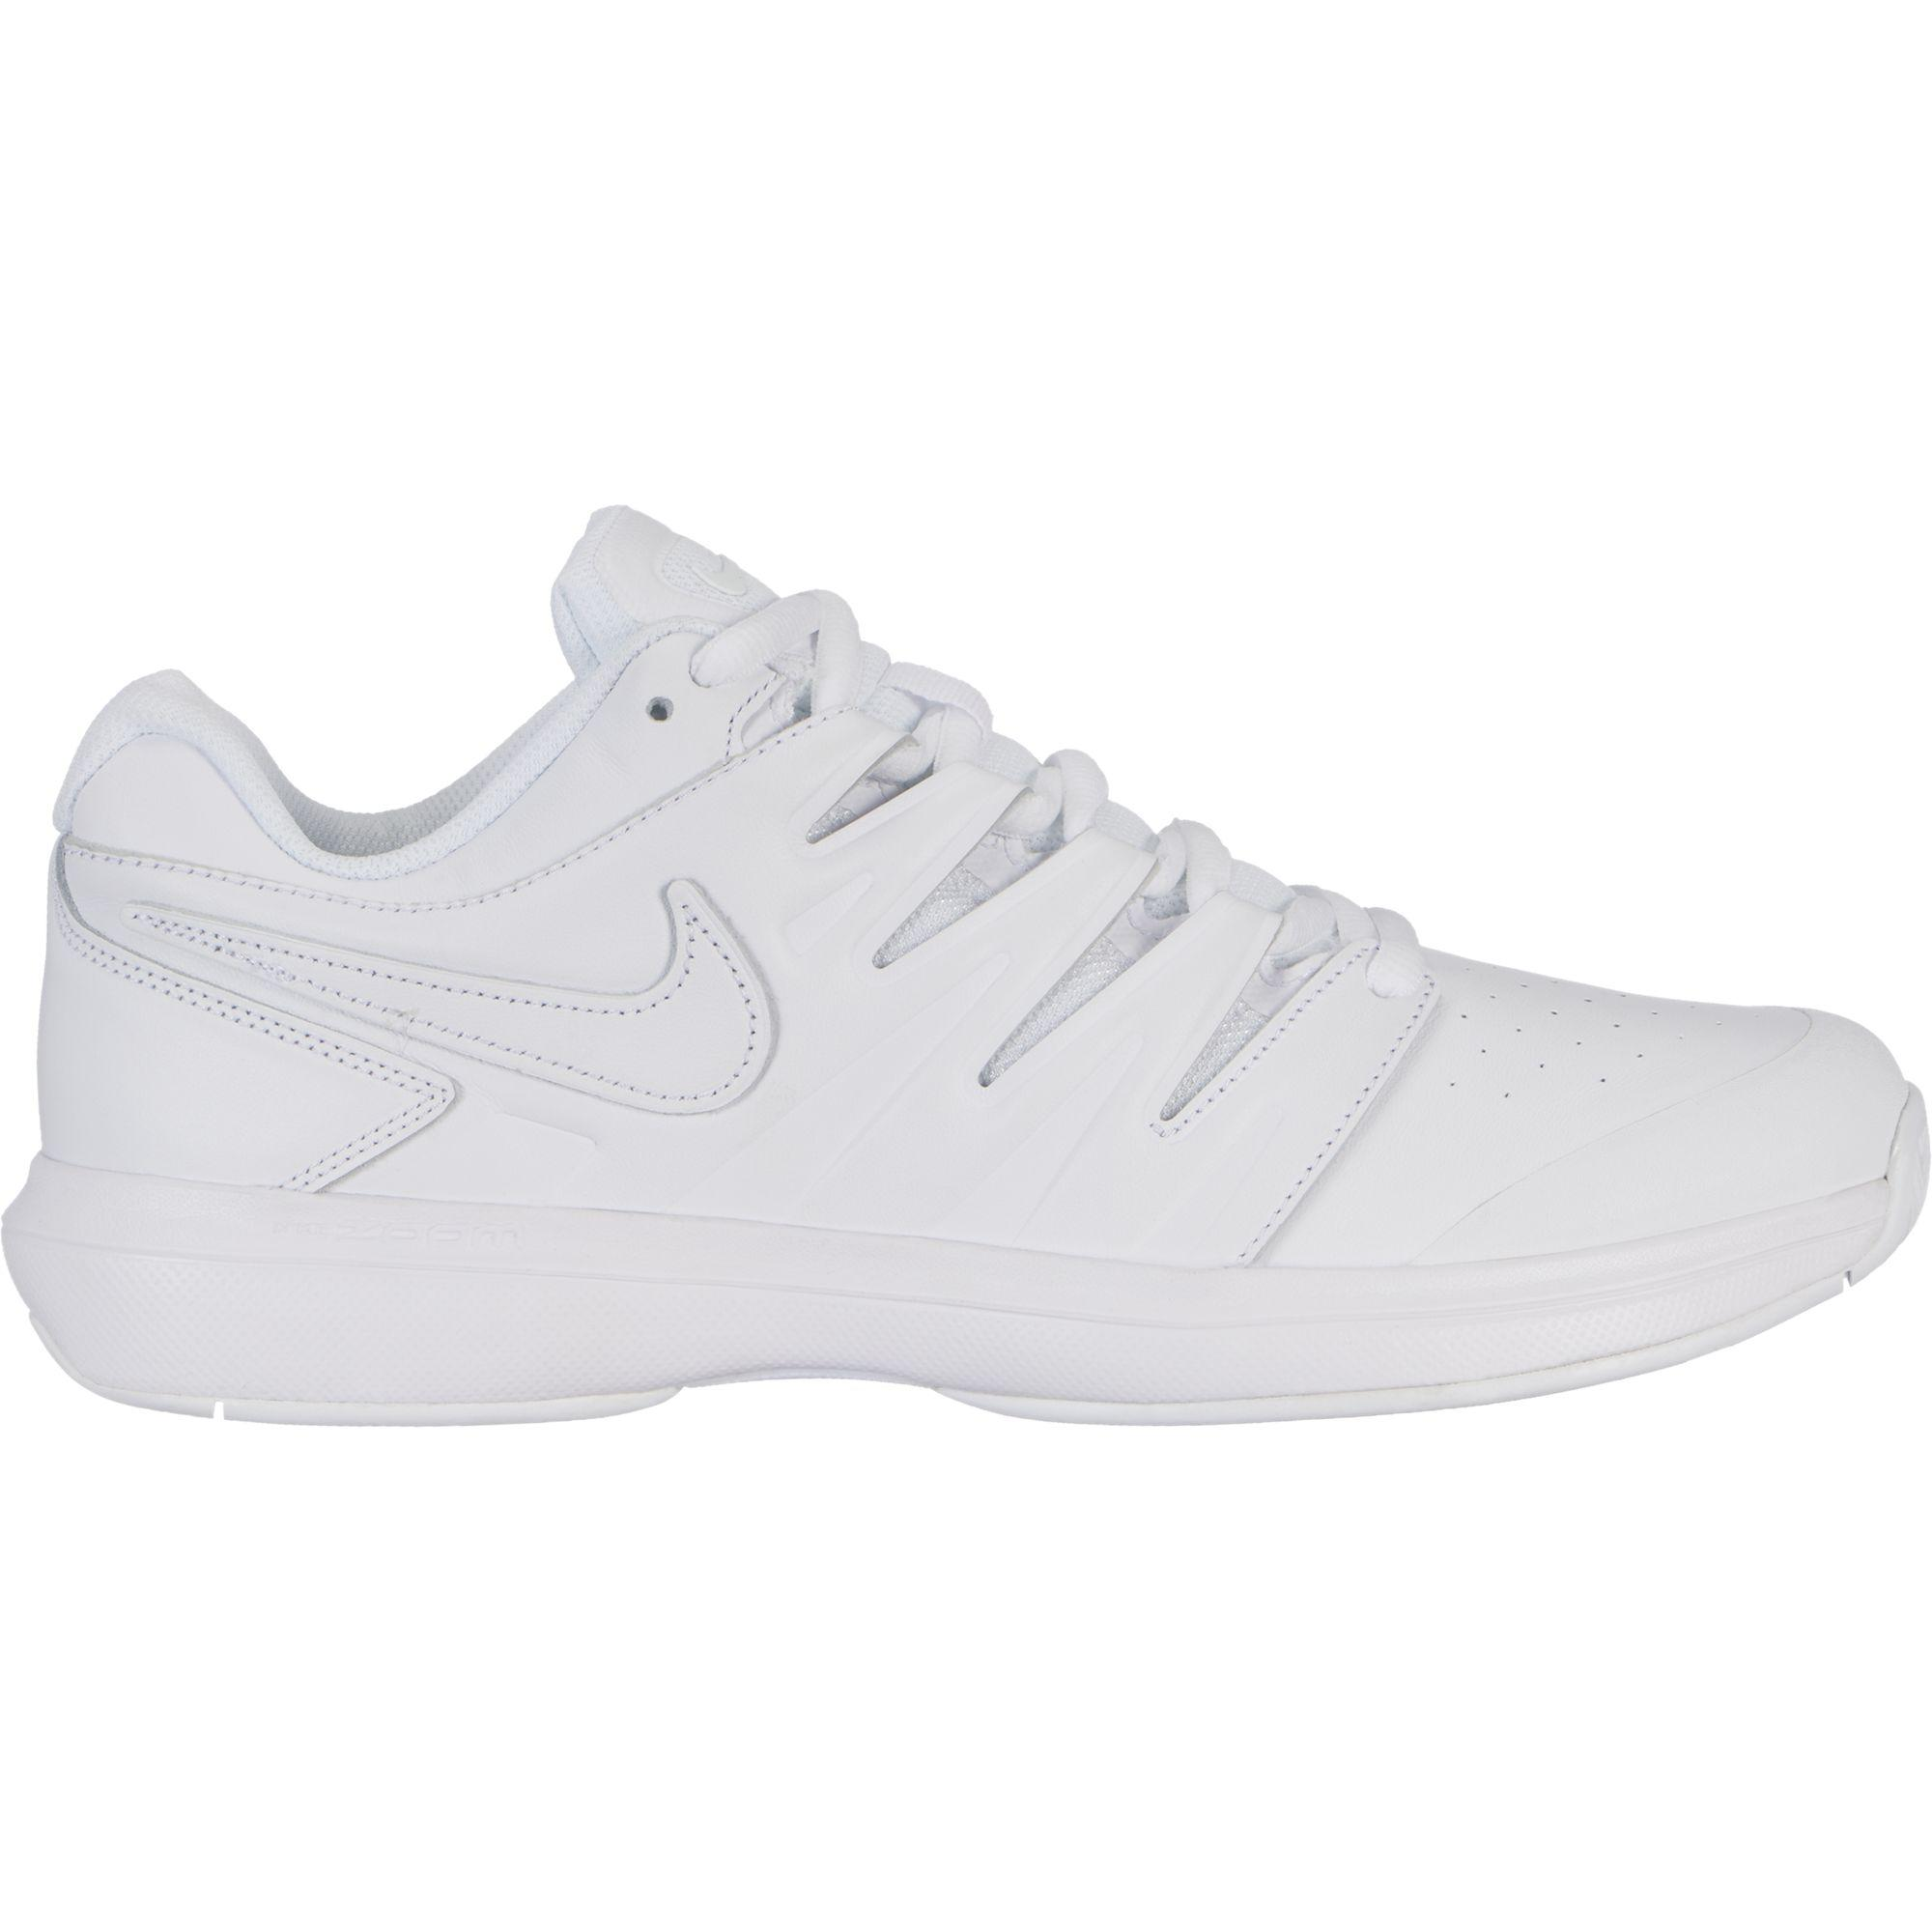 c5260b7b114 Nike Mens Air Zoom Prestige Tennis Shoes - White Black - Tennisnuts.com